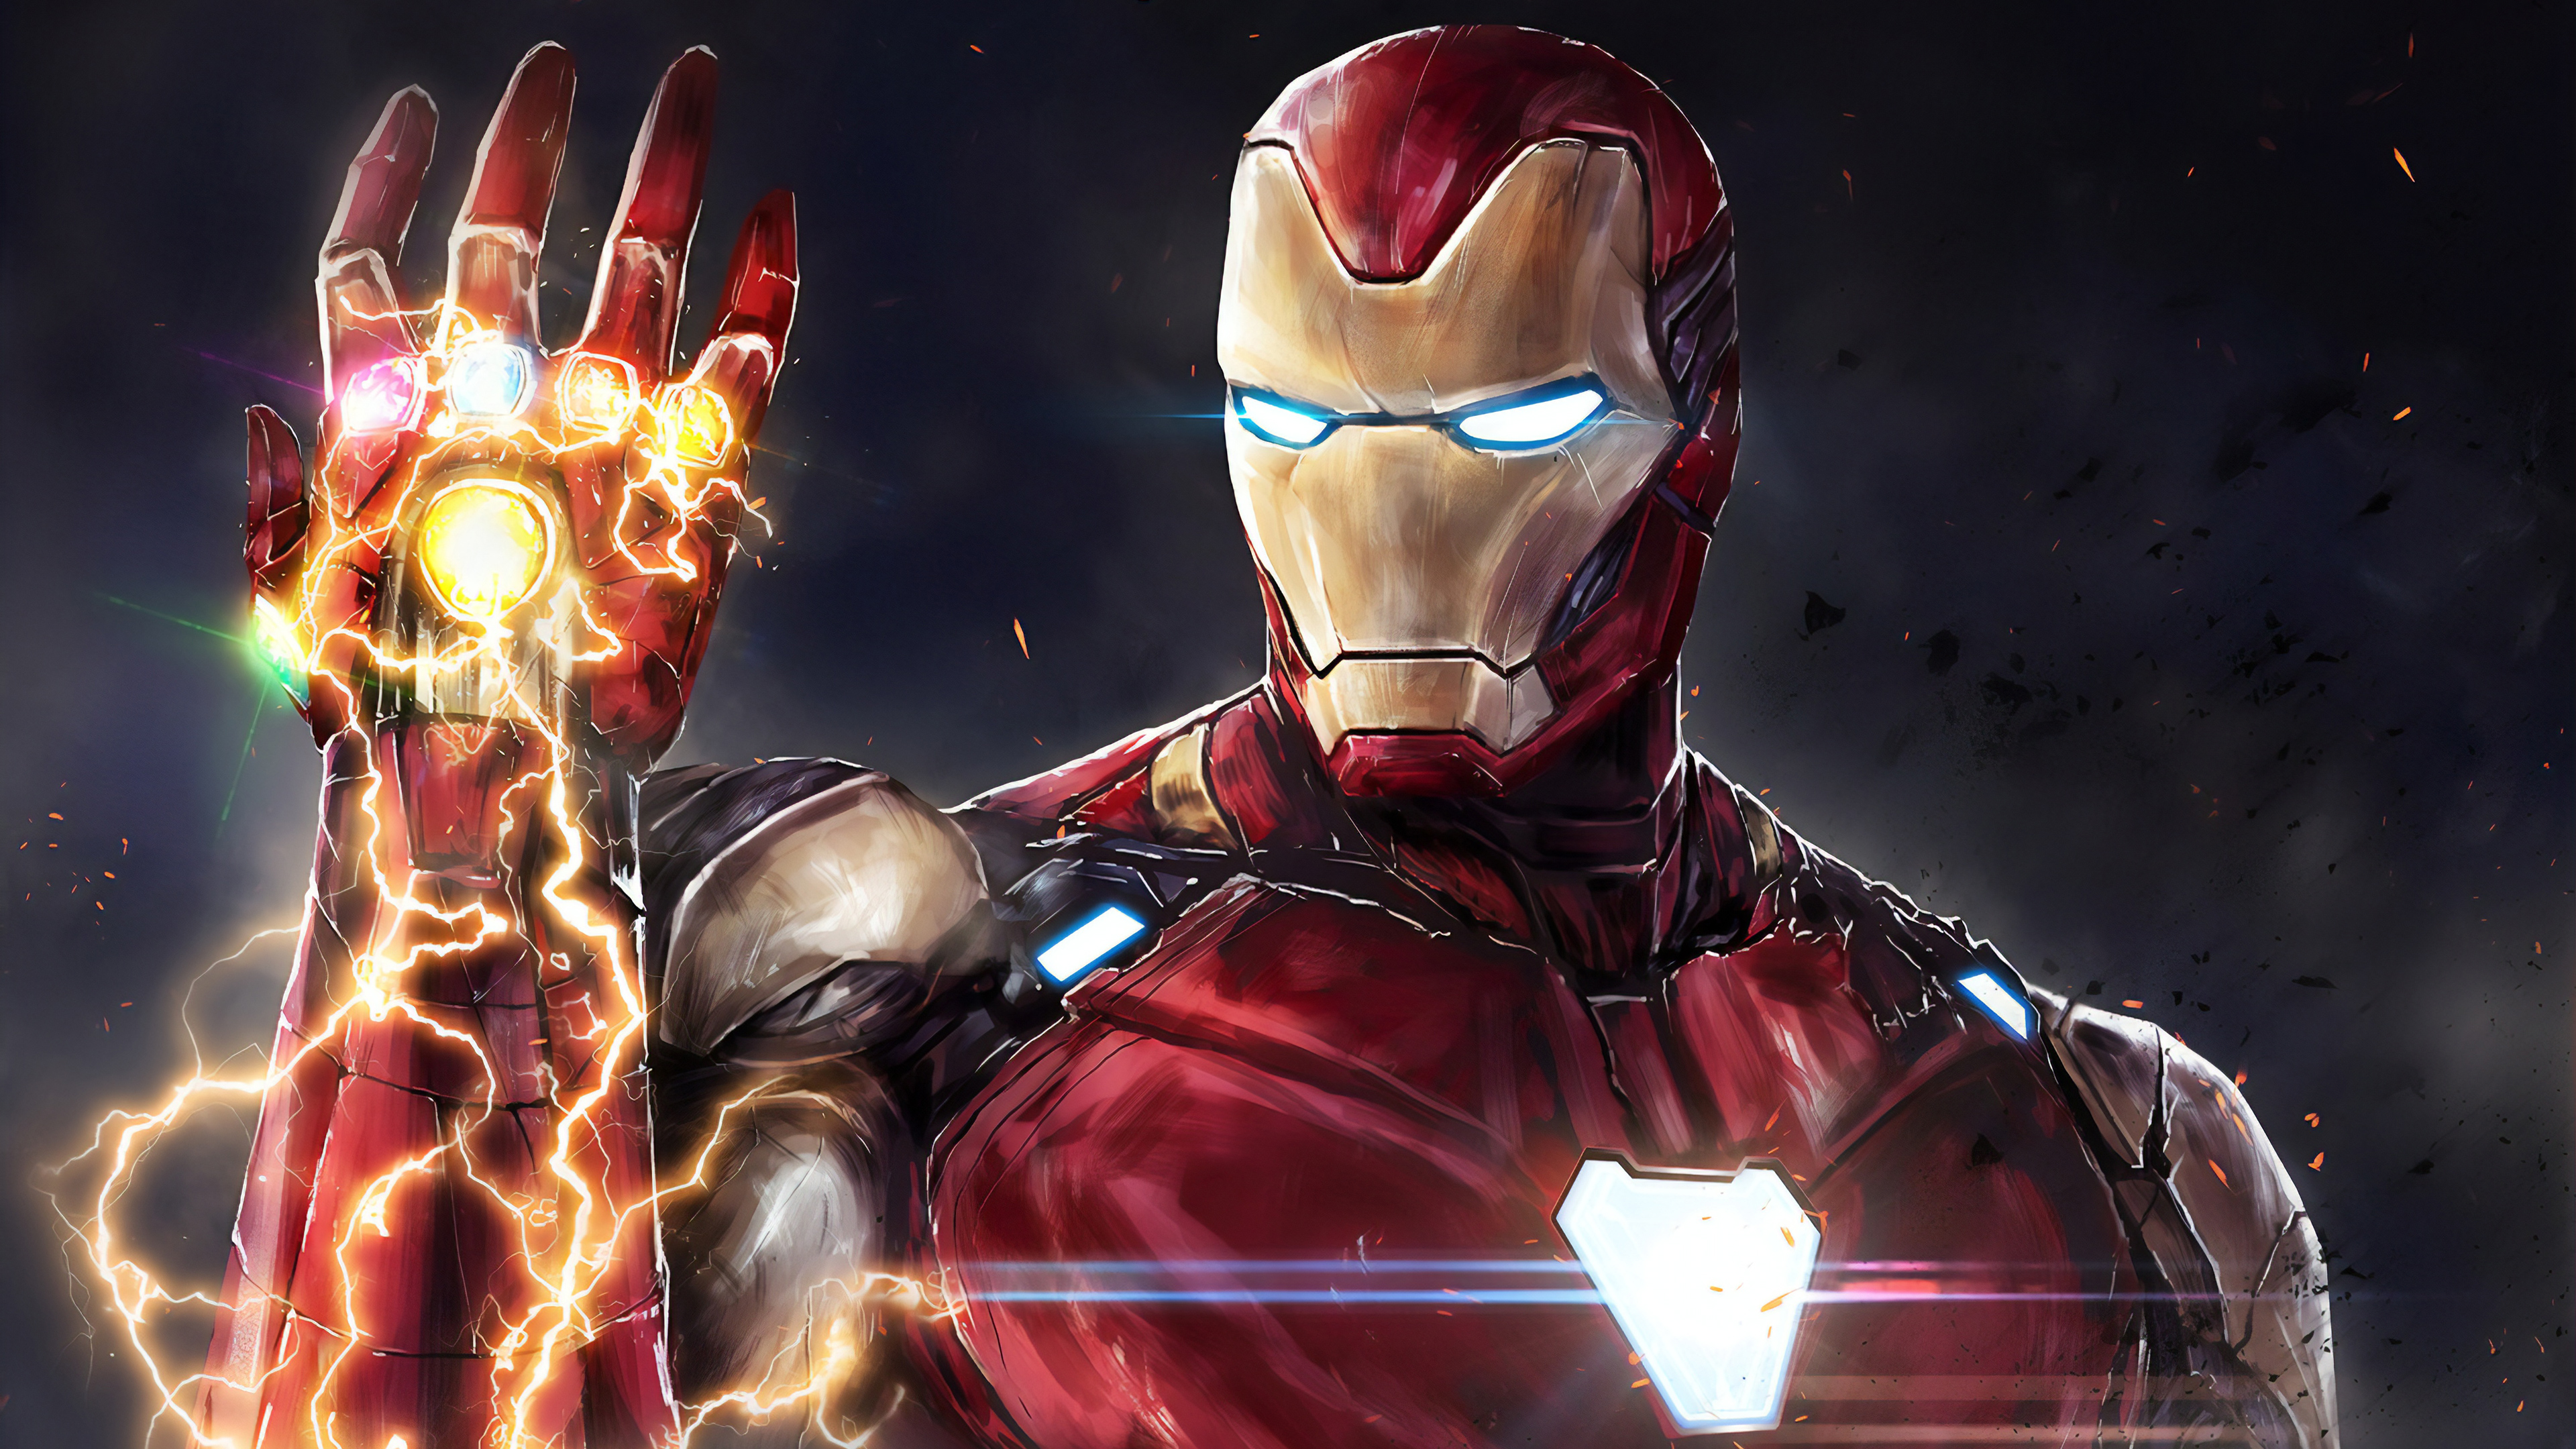 I Am Iron Man 4k Hd Superheroes 4k Wallpapers Images